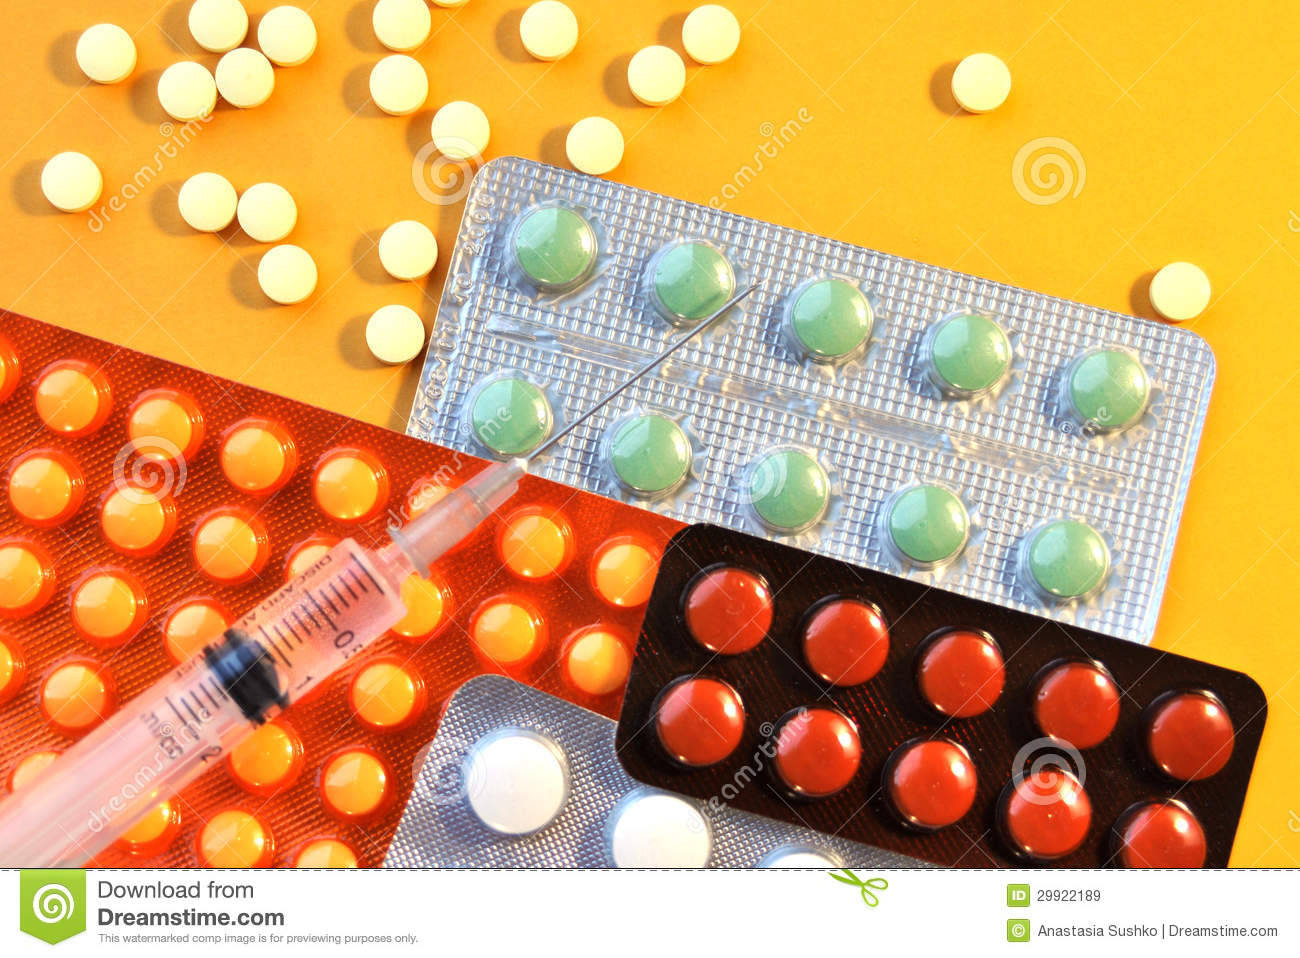 Medicine Royalty Free Stock Images - Image: 29922189